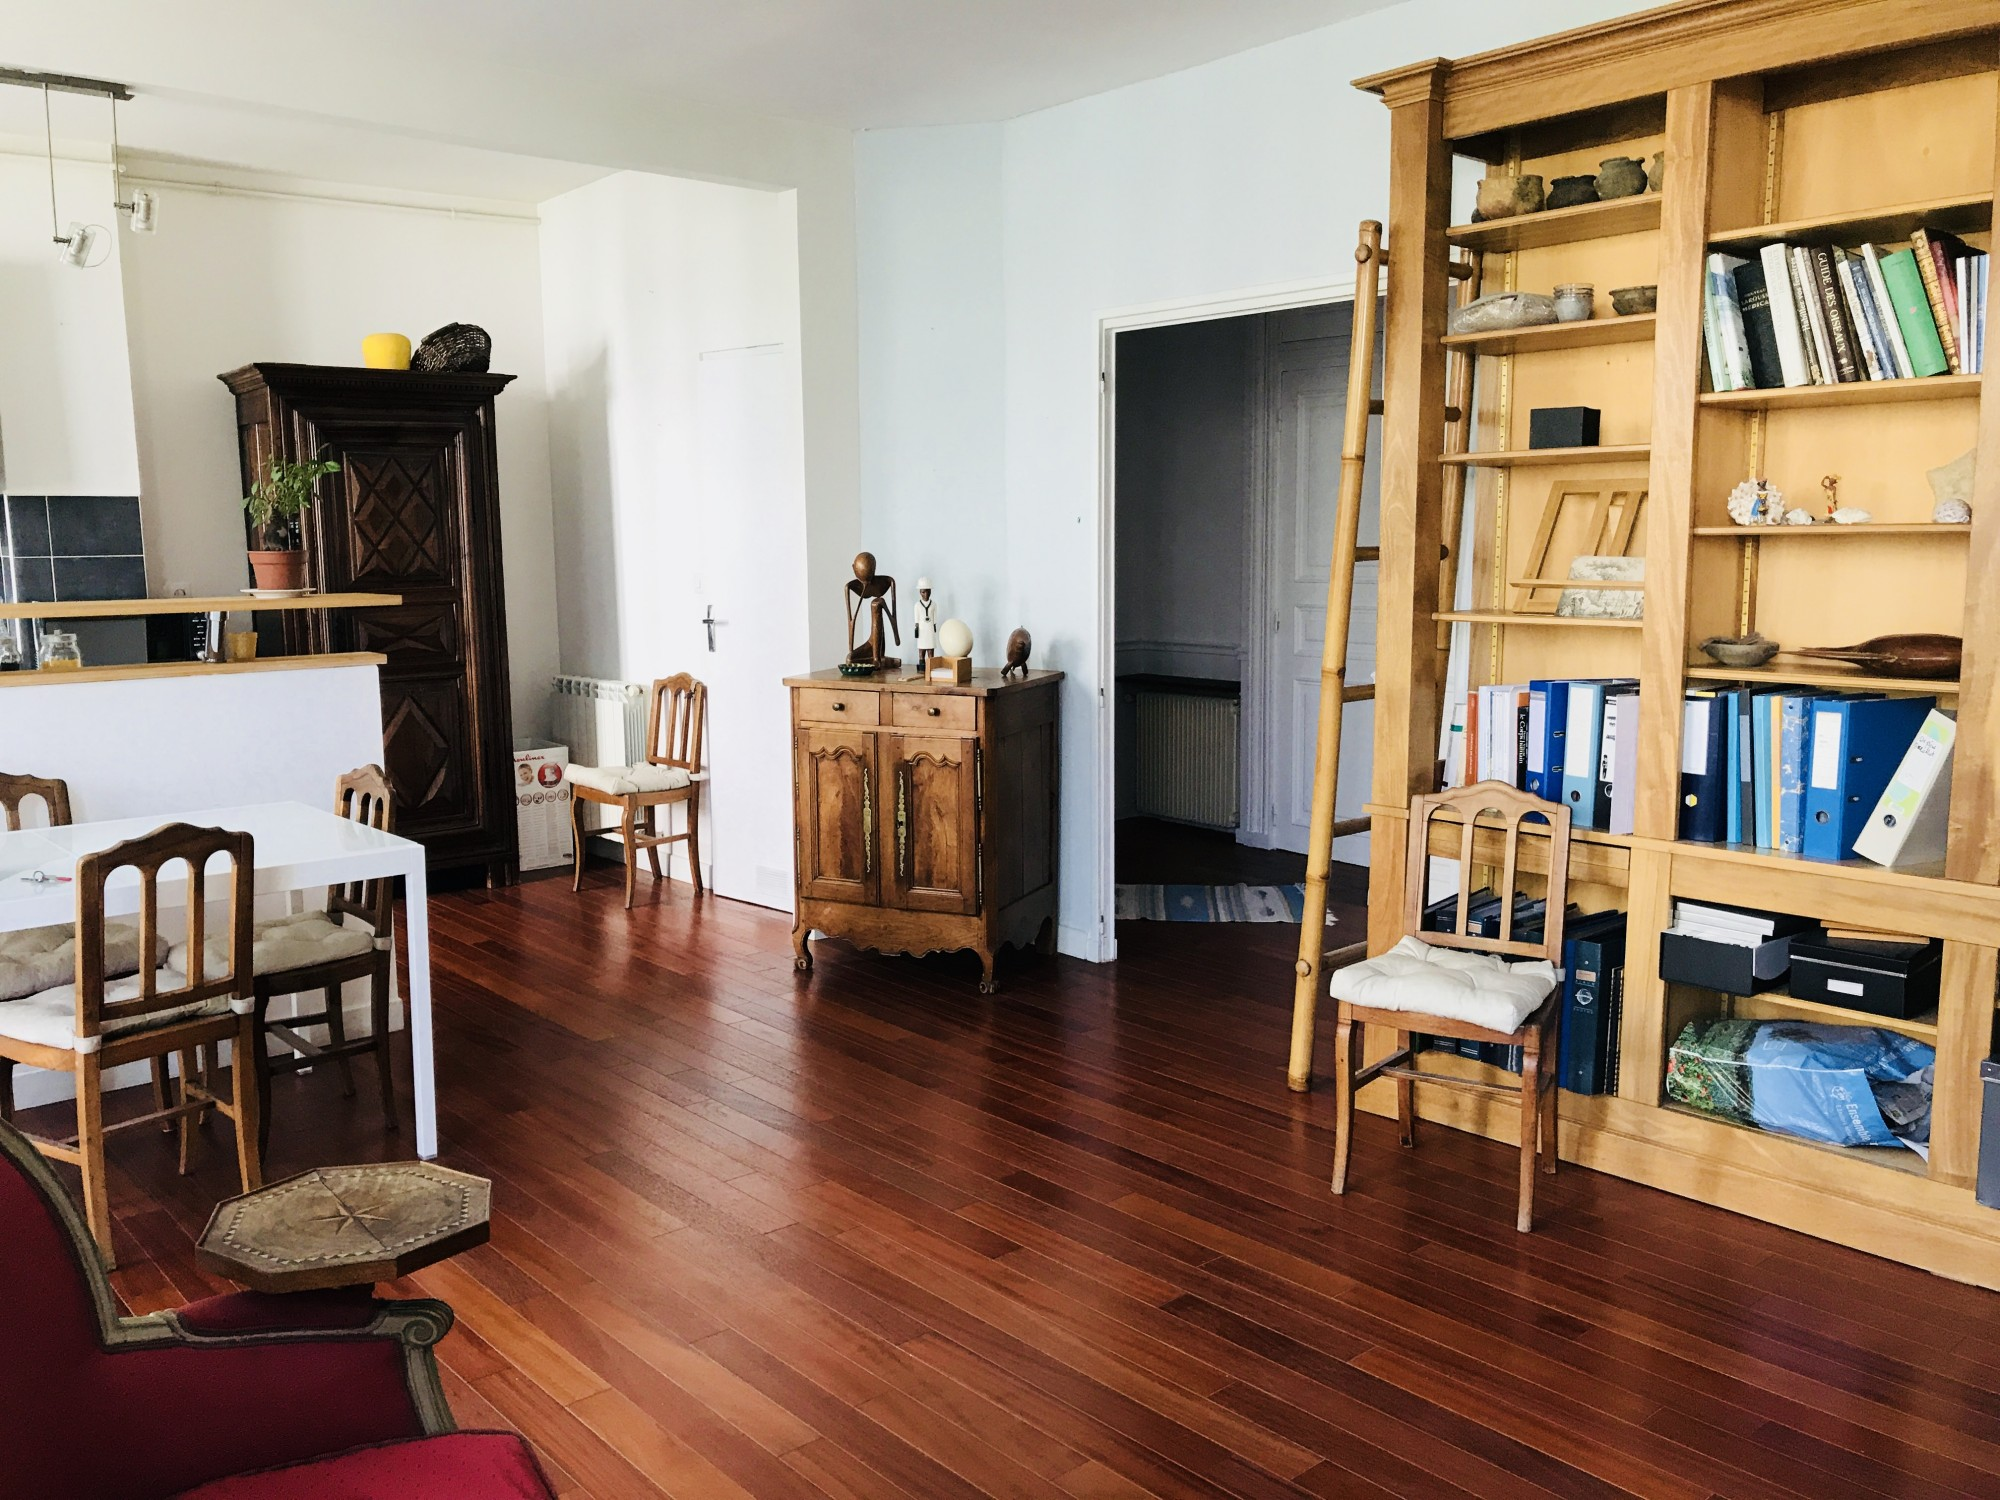 Agence immobili re marseille 7 me immobili re de l 39 abbaye for Agence immobiliere 45